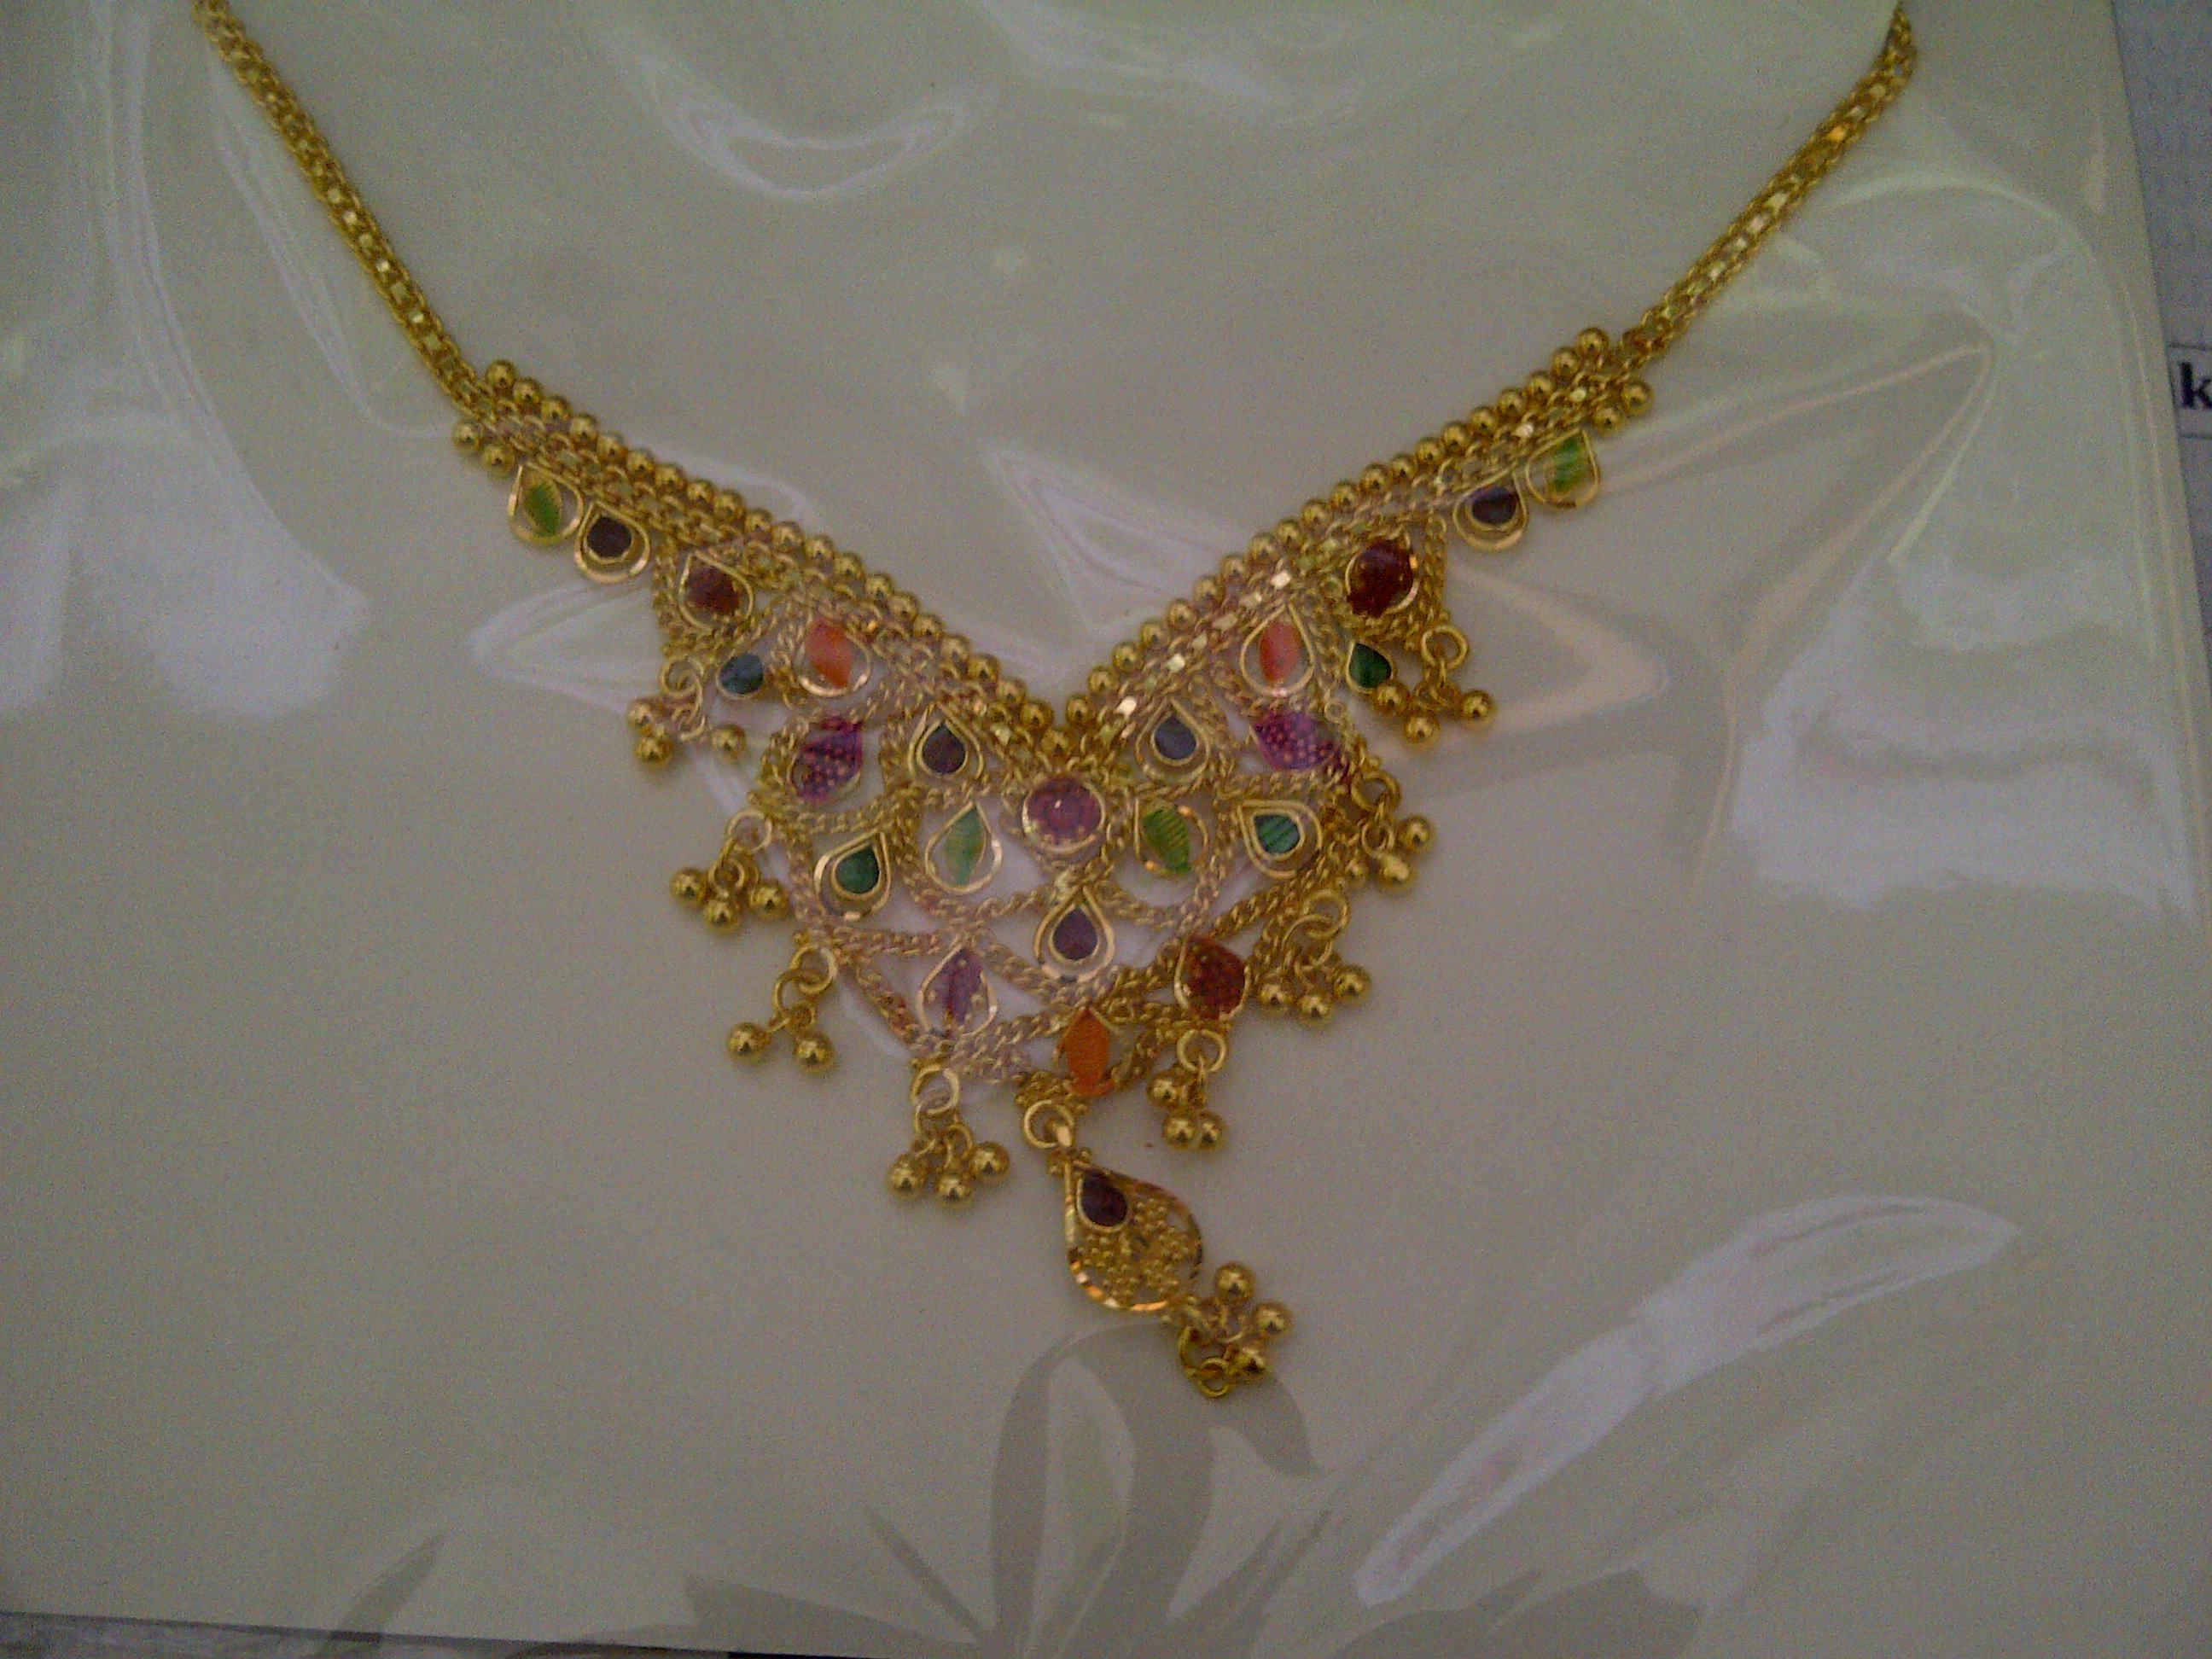 yellow lyst necklace large in gallery gold arc product jewelry gurhan pendant crescent